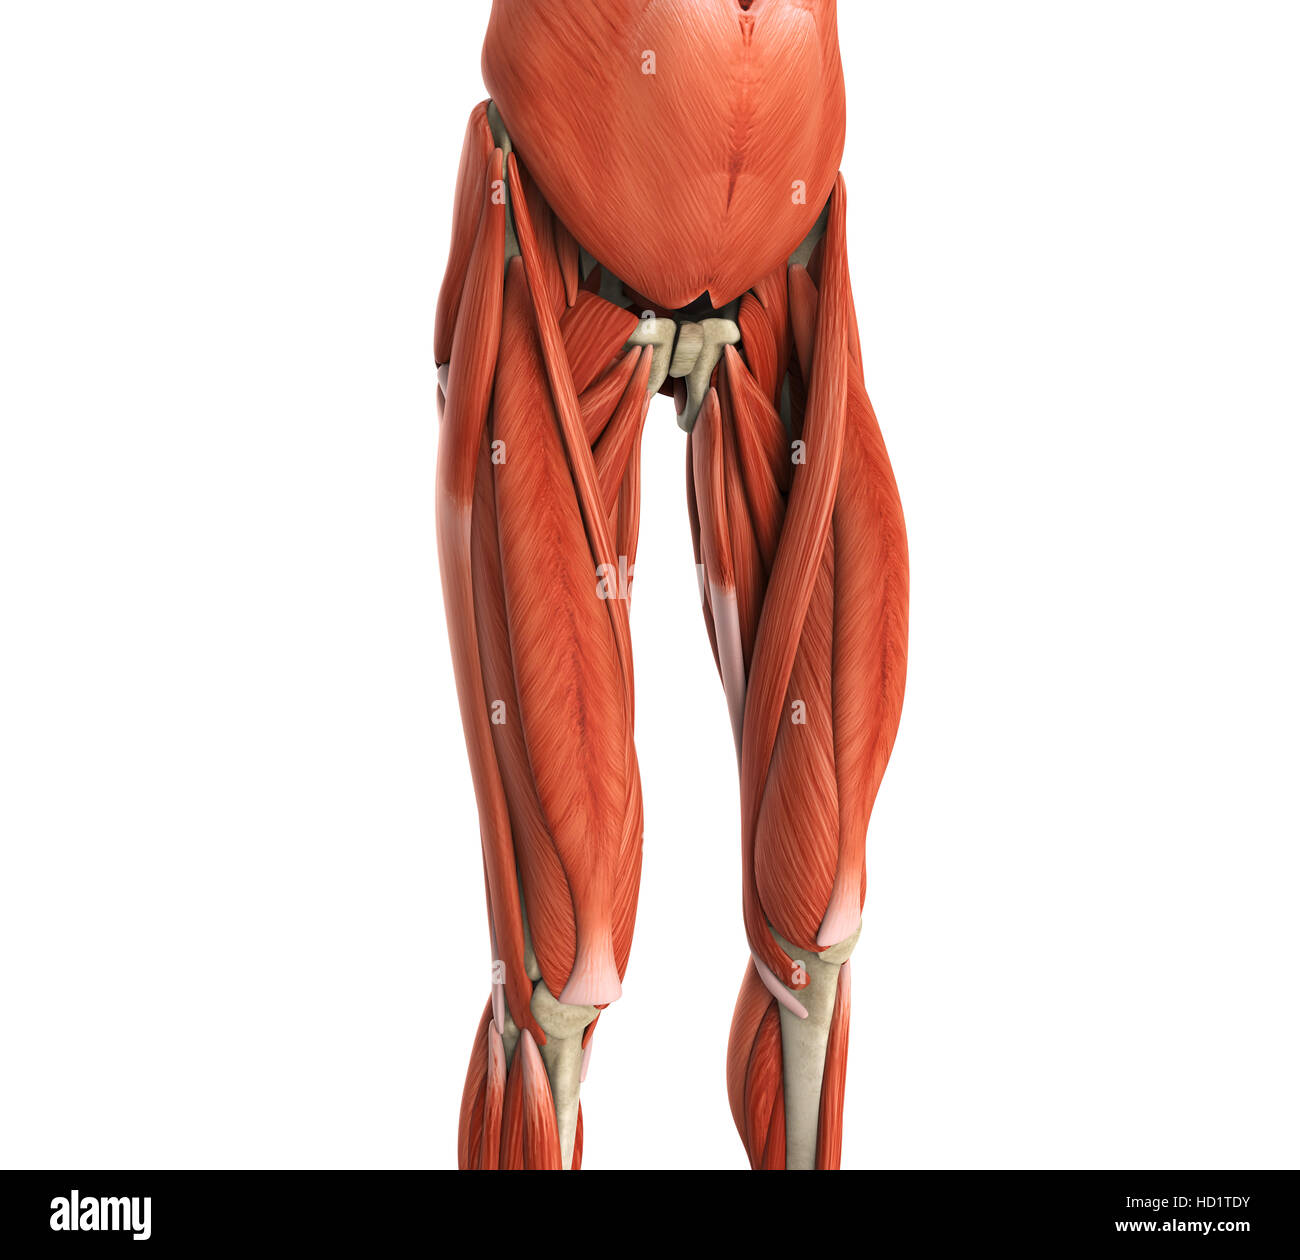 Upper Legs Muscles Anatomy Stock Photo: 128504263 - Alamy